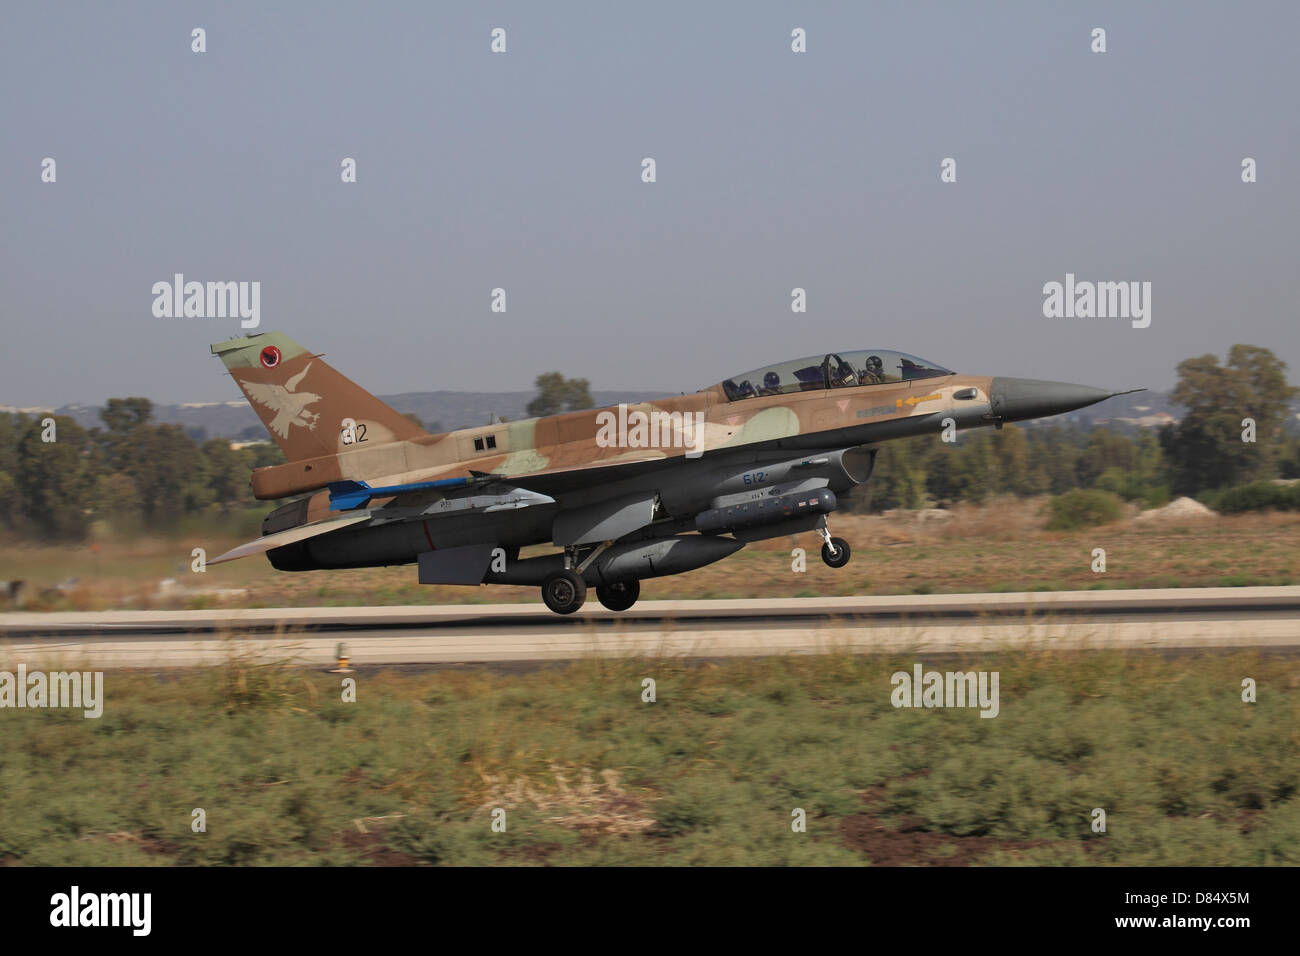 An F-16D Barak of the Israeli Air Force taking off from Ramat David Air Force Base in Israel. - Stock Image